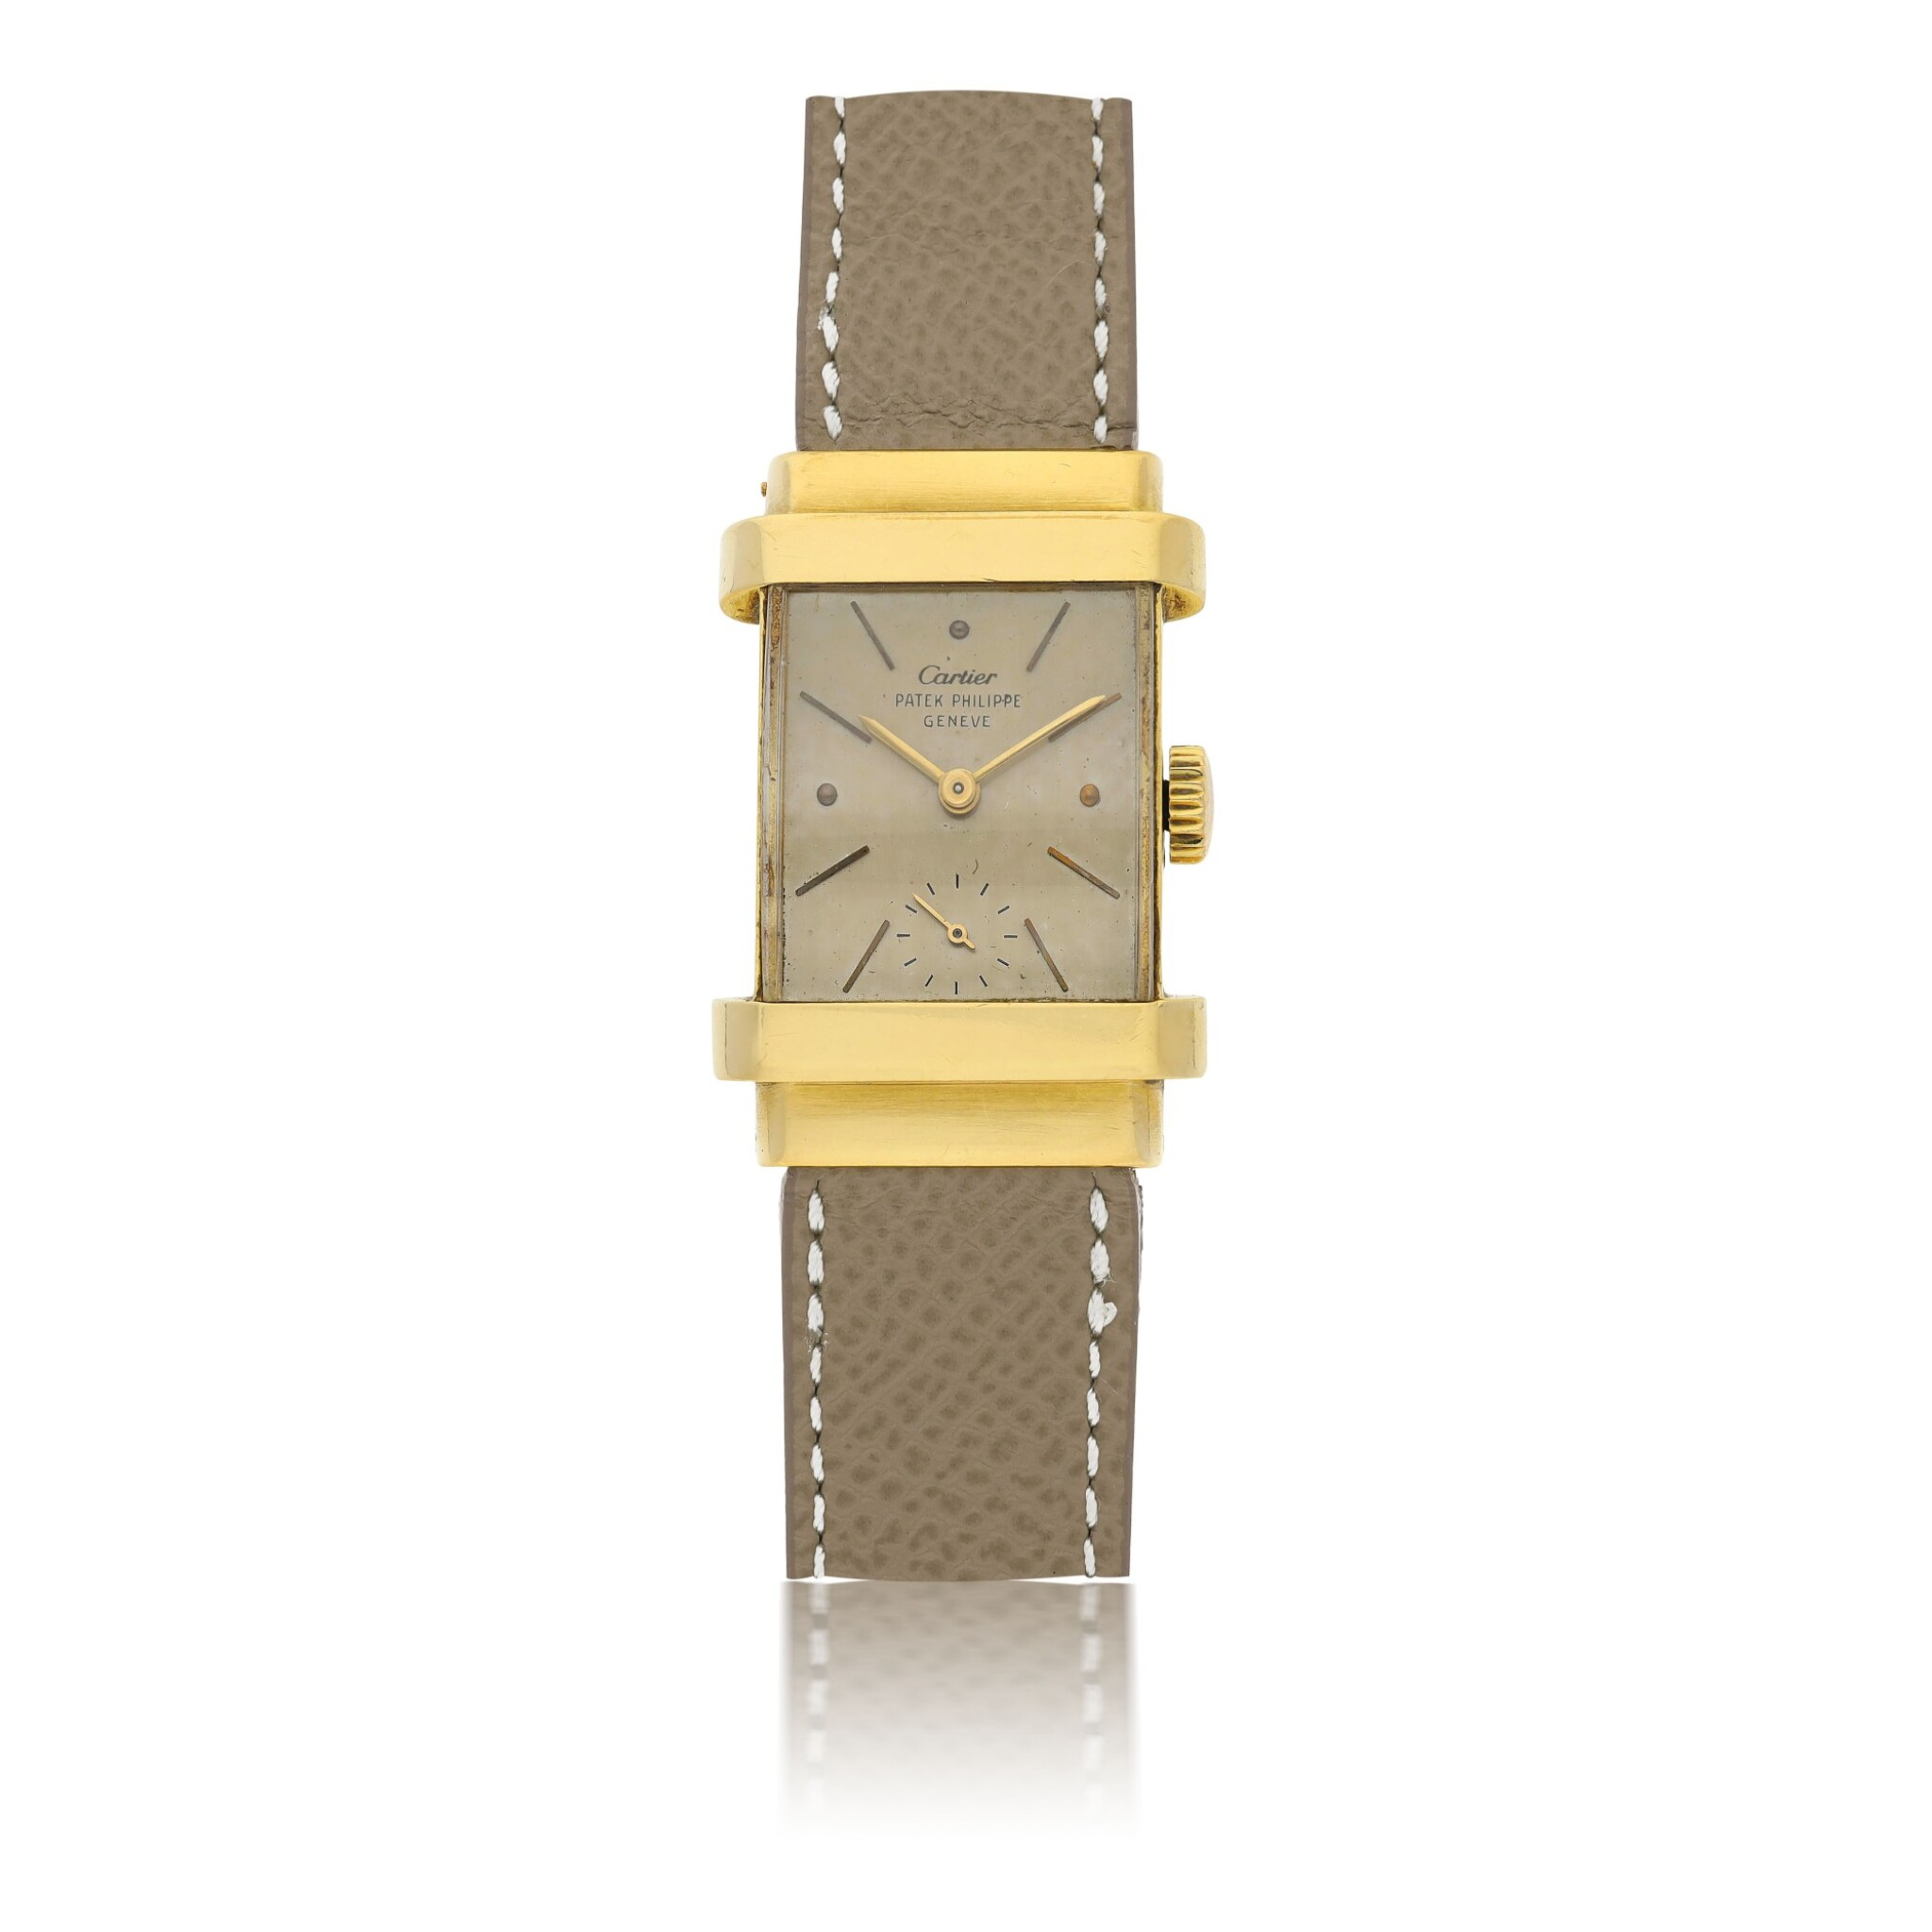 View full screen - View 1 of Lot 112. PATEK PHILIPPE | REF 1450 'TOP HAT', RETAILED BY CARTIER: A YELLOW GOLD RECTANGULAR WRISTWATCH CIRCA 1950.